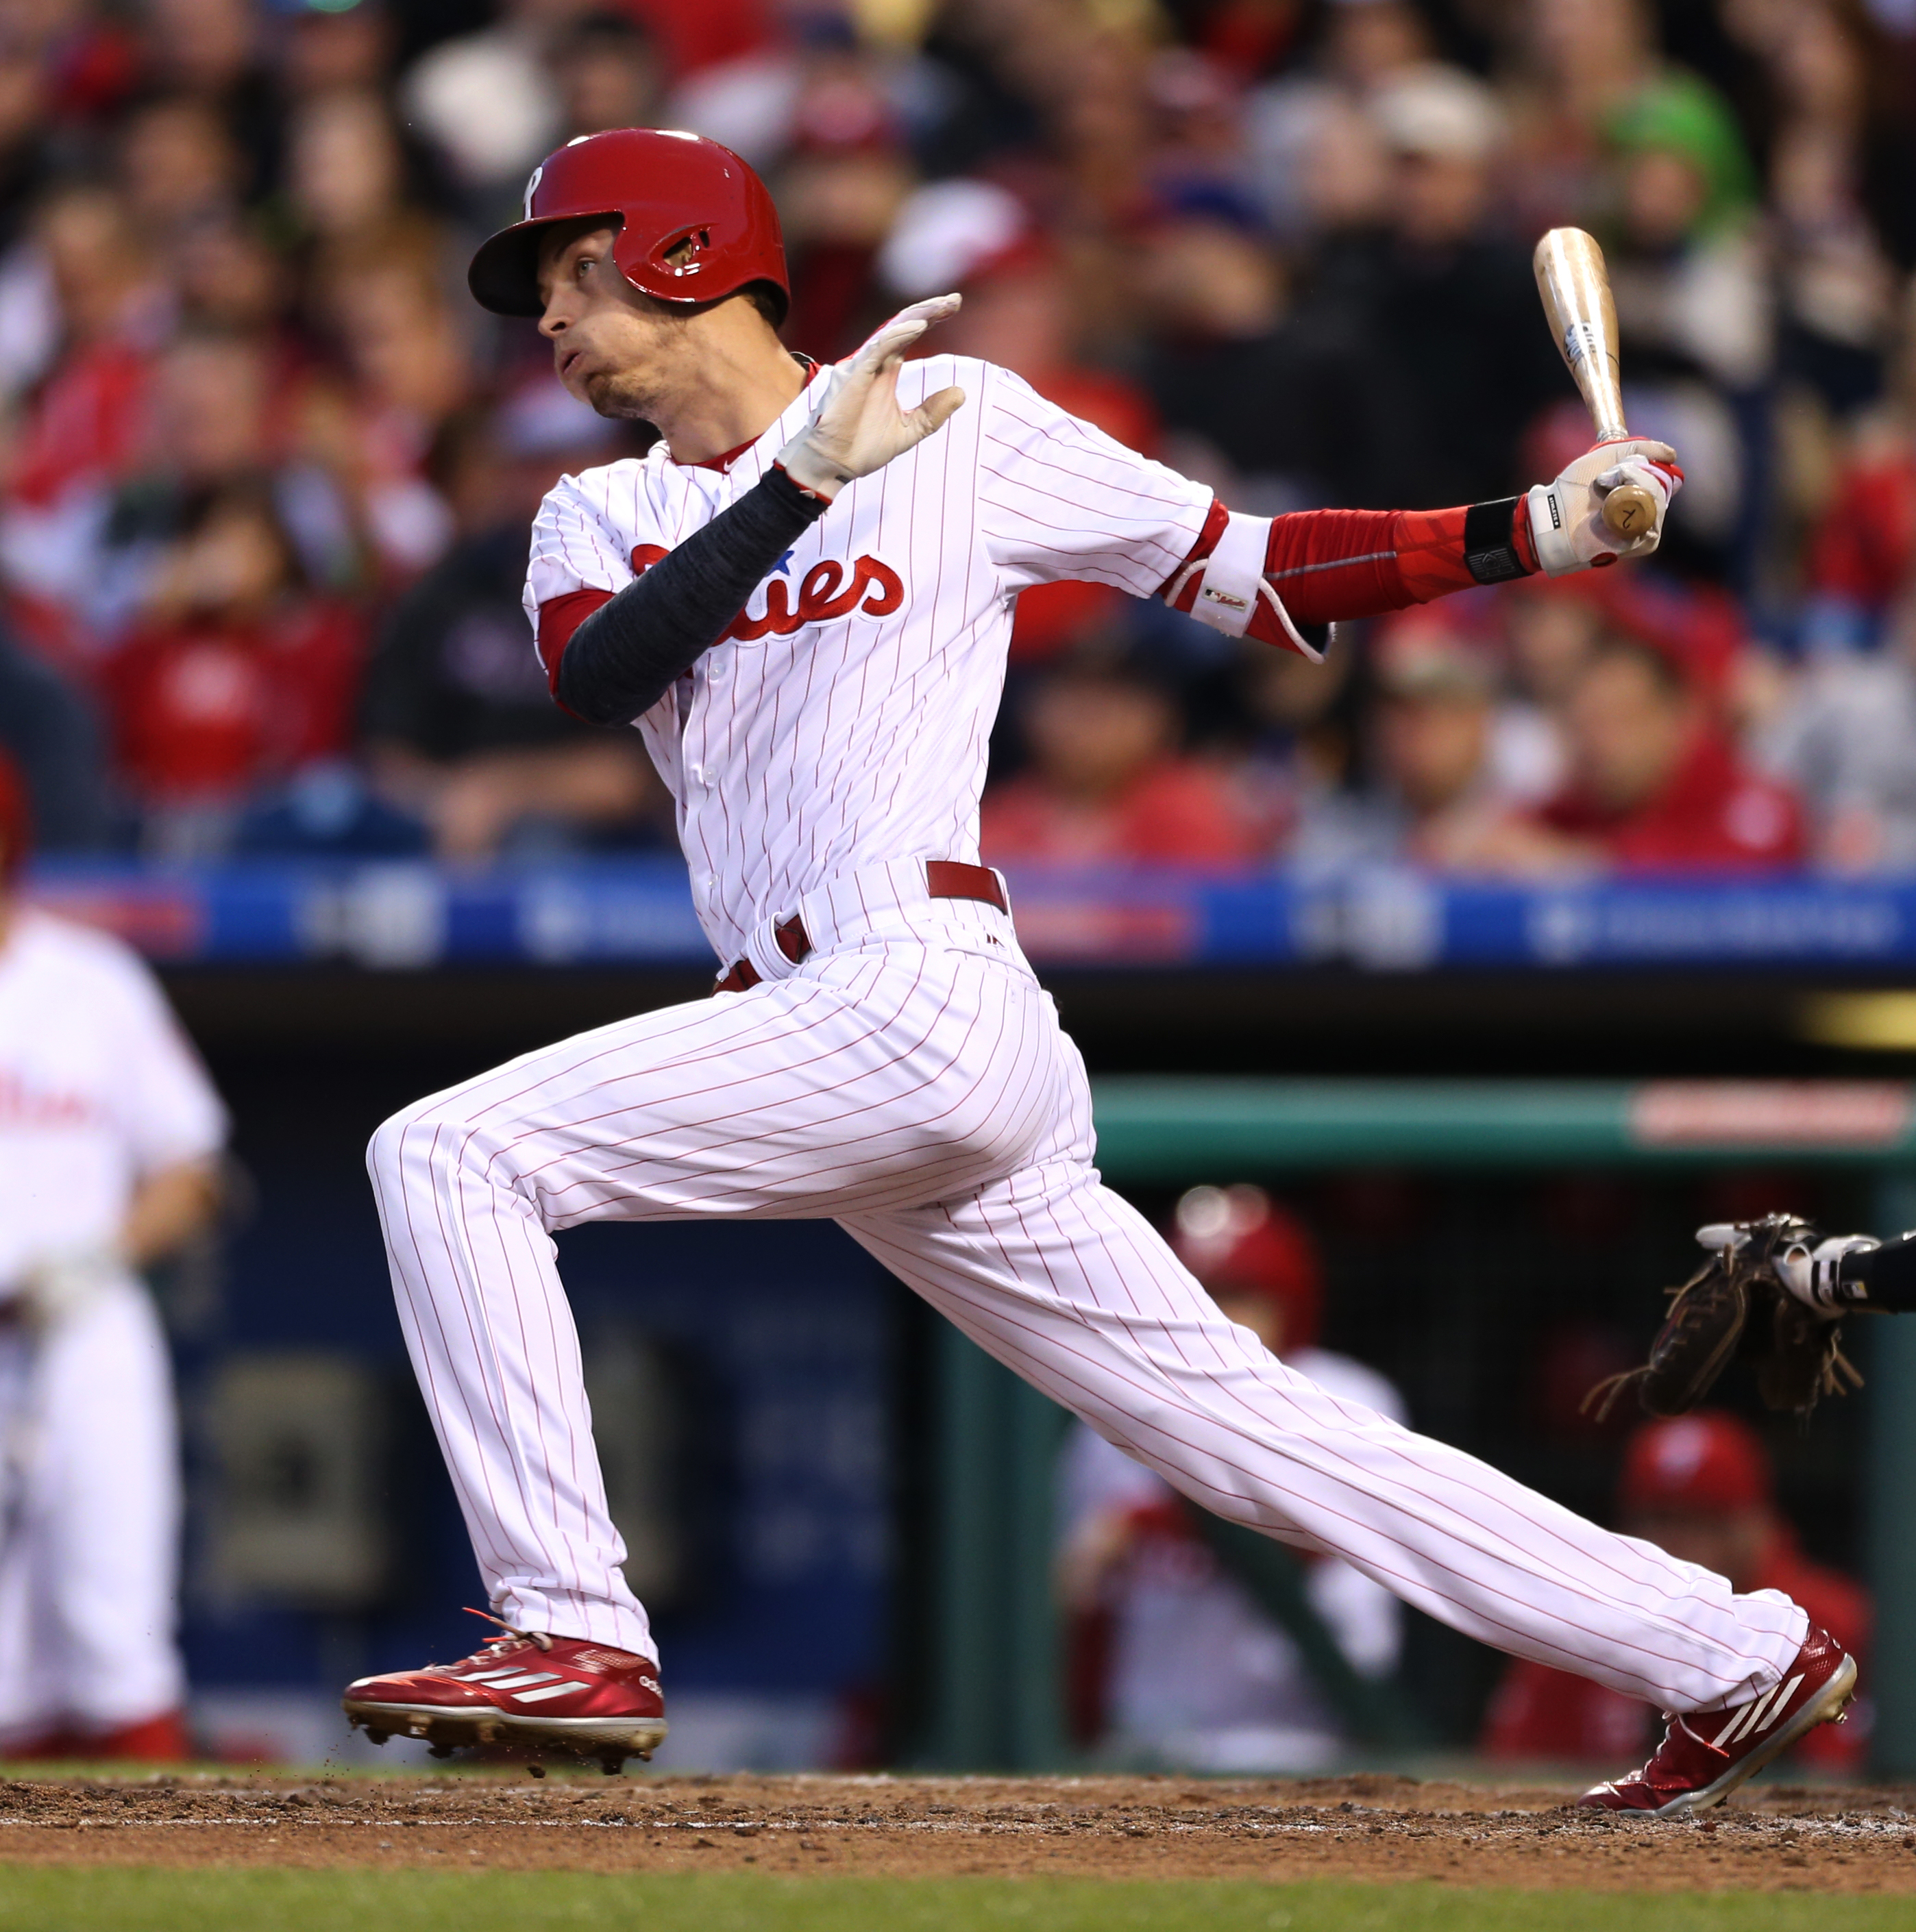 Philadelphia Phillies' Tyler Goeddel follows through on an RBI single allowing Carlos Ruiz to score on a pitch by Miami Marlins starting pitcher Adam Conley in the fourth inning of a baseball game, Monday, May 16, 2016, in Philadelphia. (AP Photo/Laurence